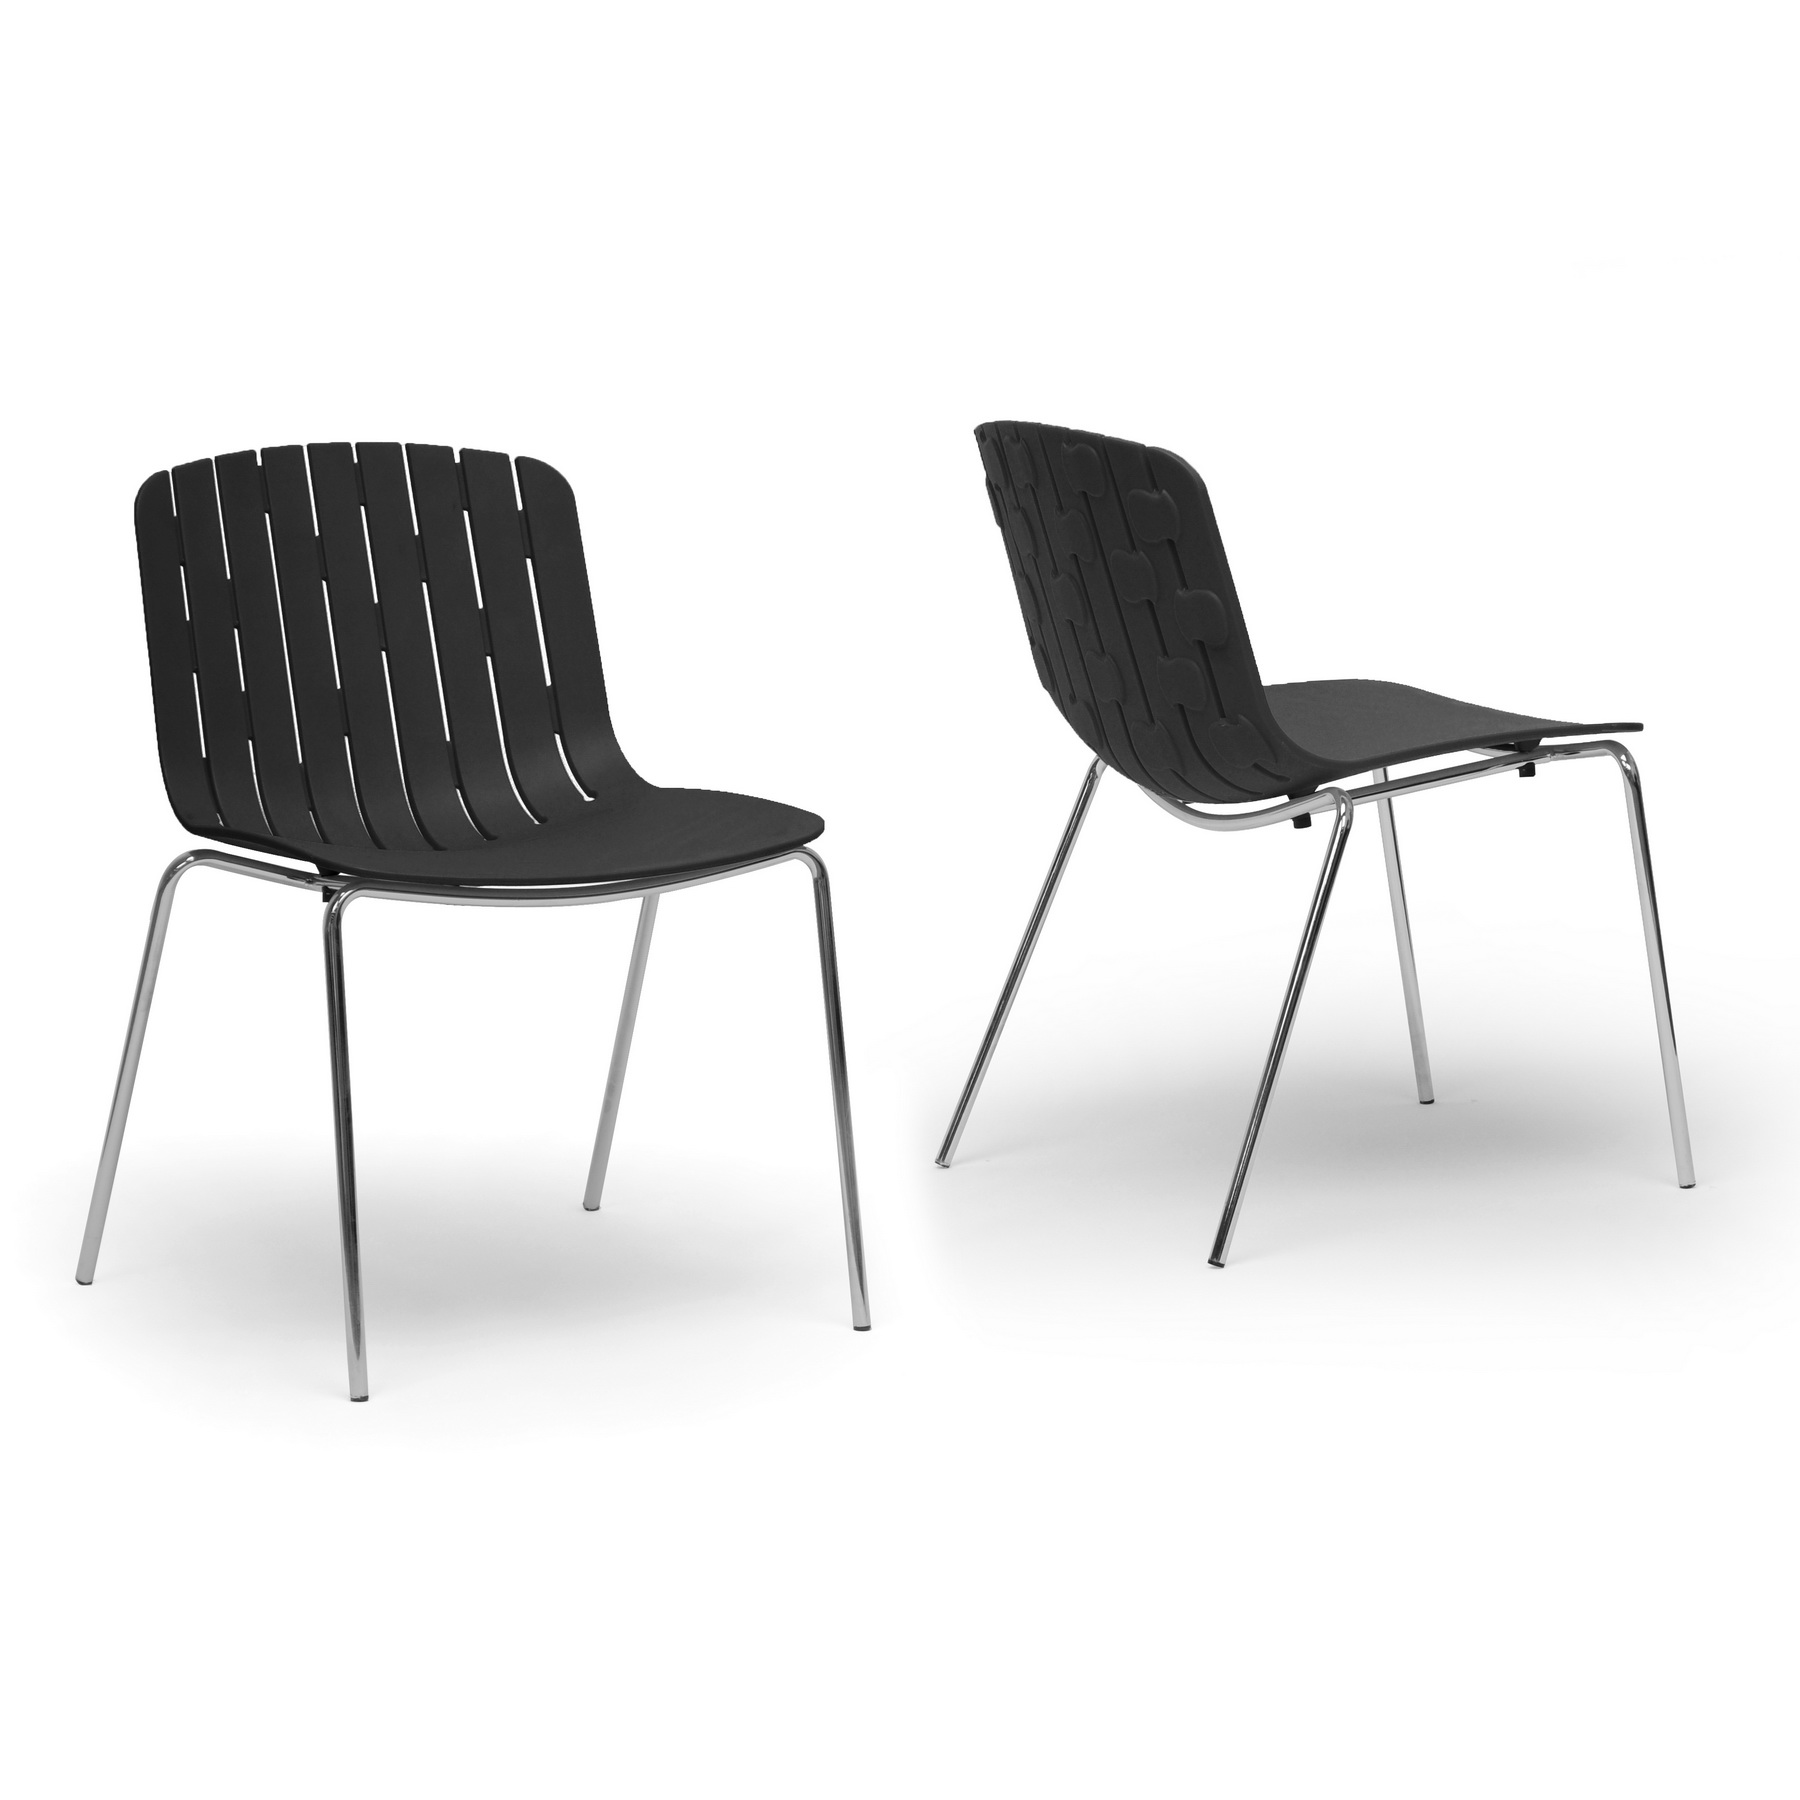 Plastic Dining Chairs Baxton Studio Florissa Black Plastic Modern Dining Chair